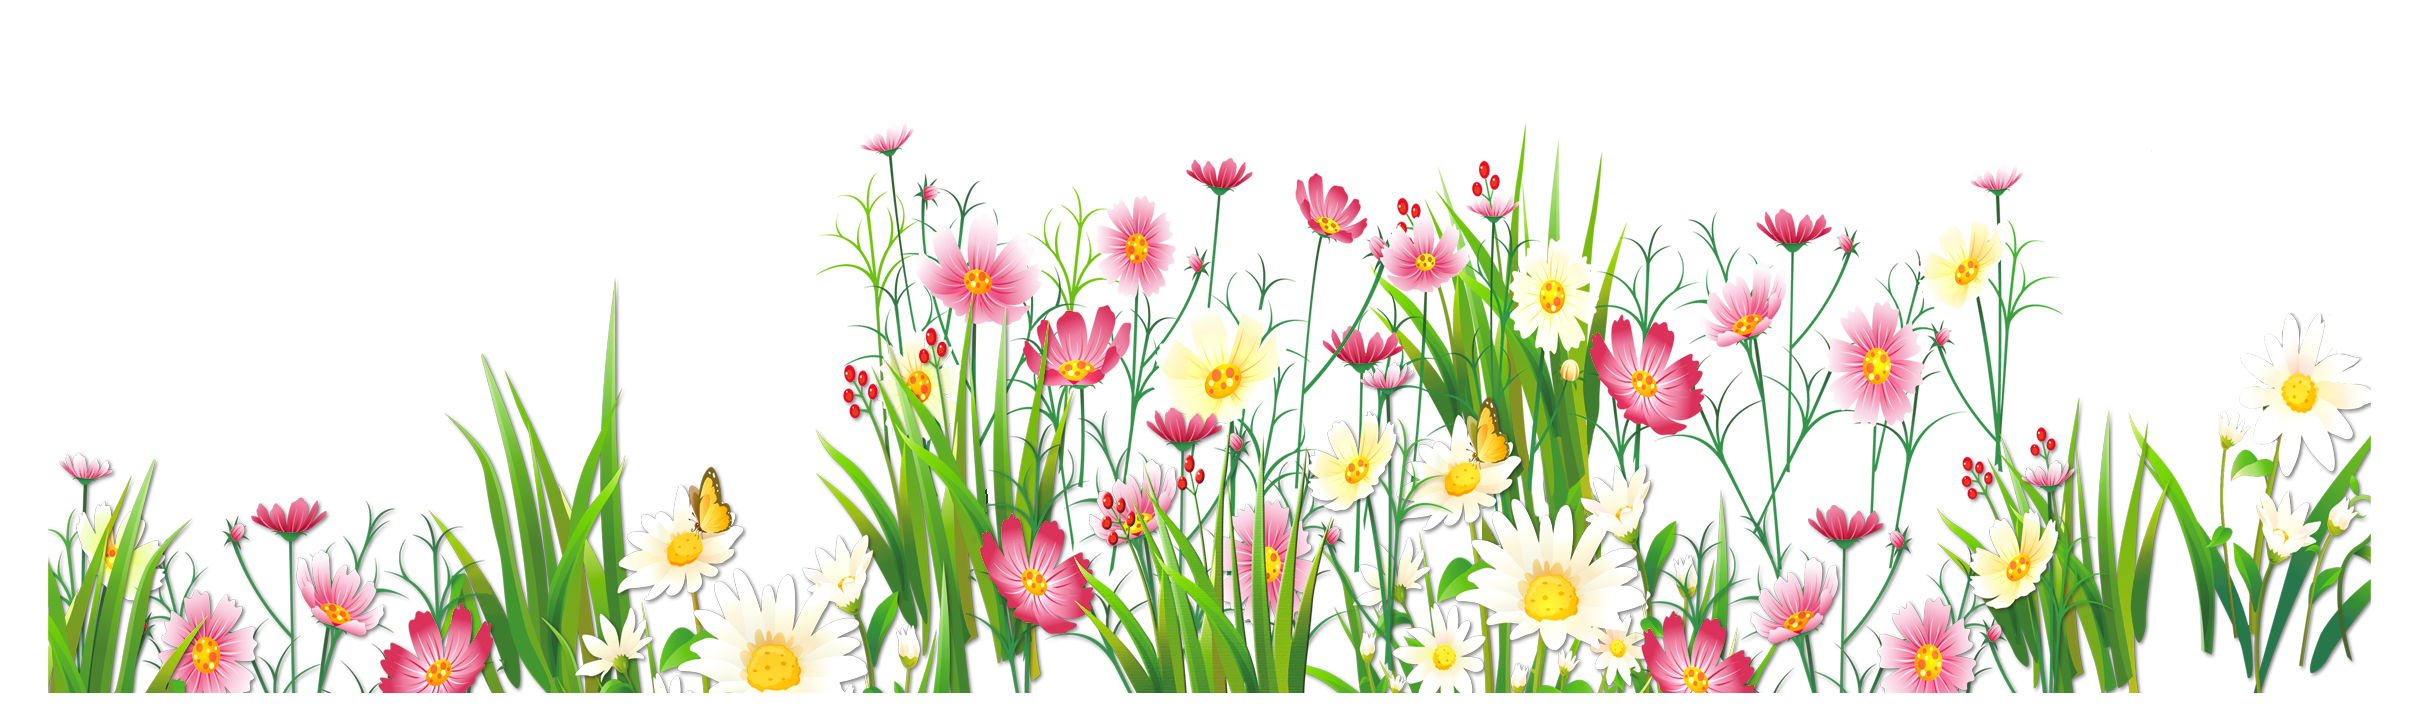 Flower cartoon png. Flowers and grass picture